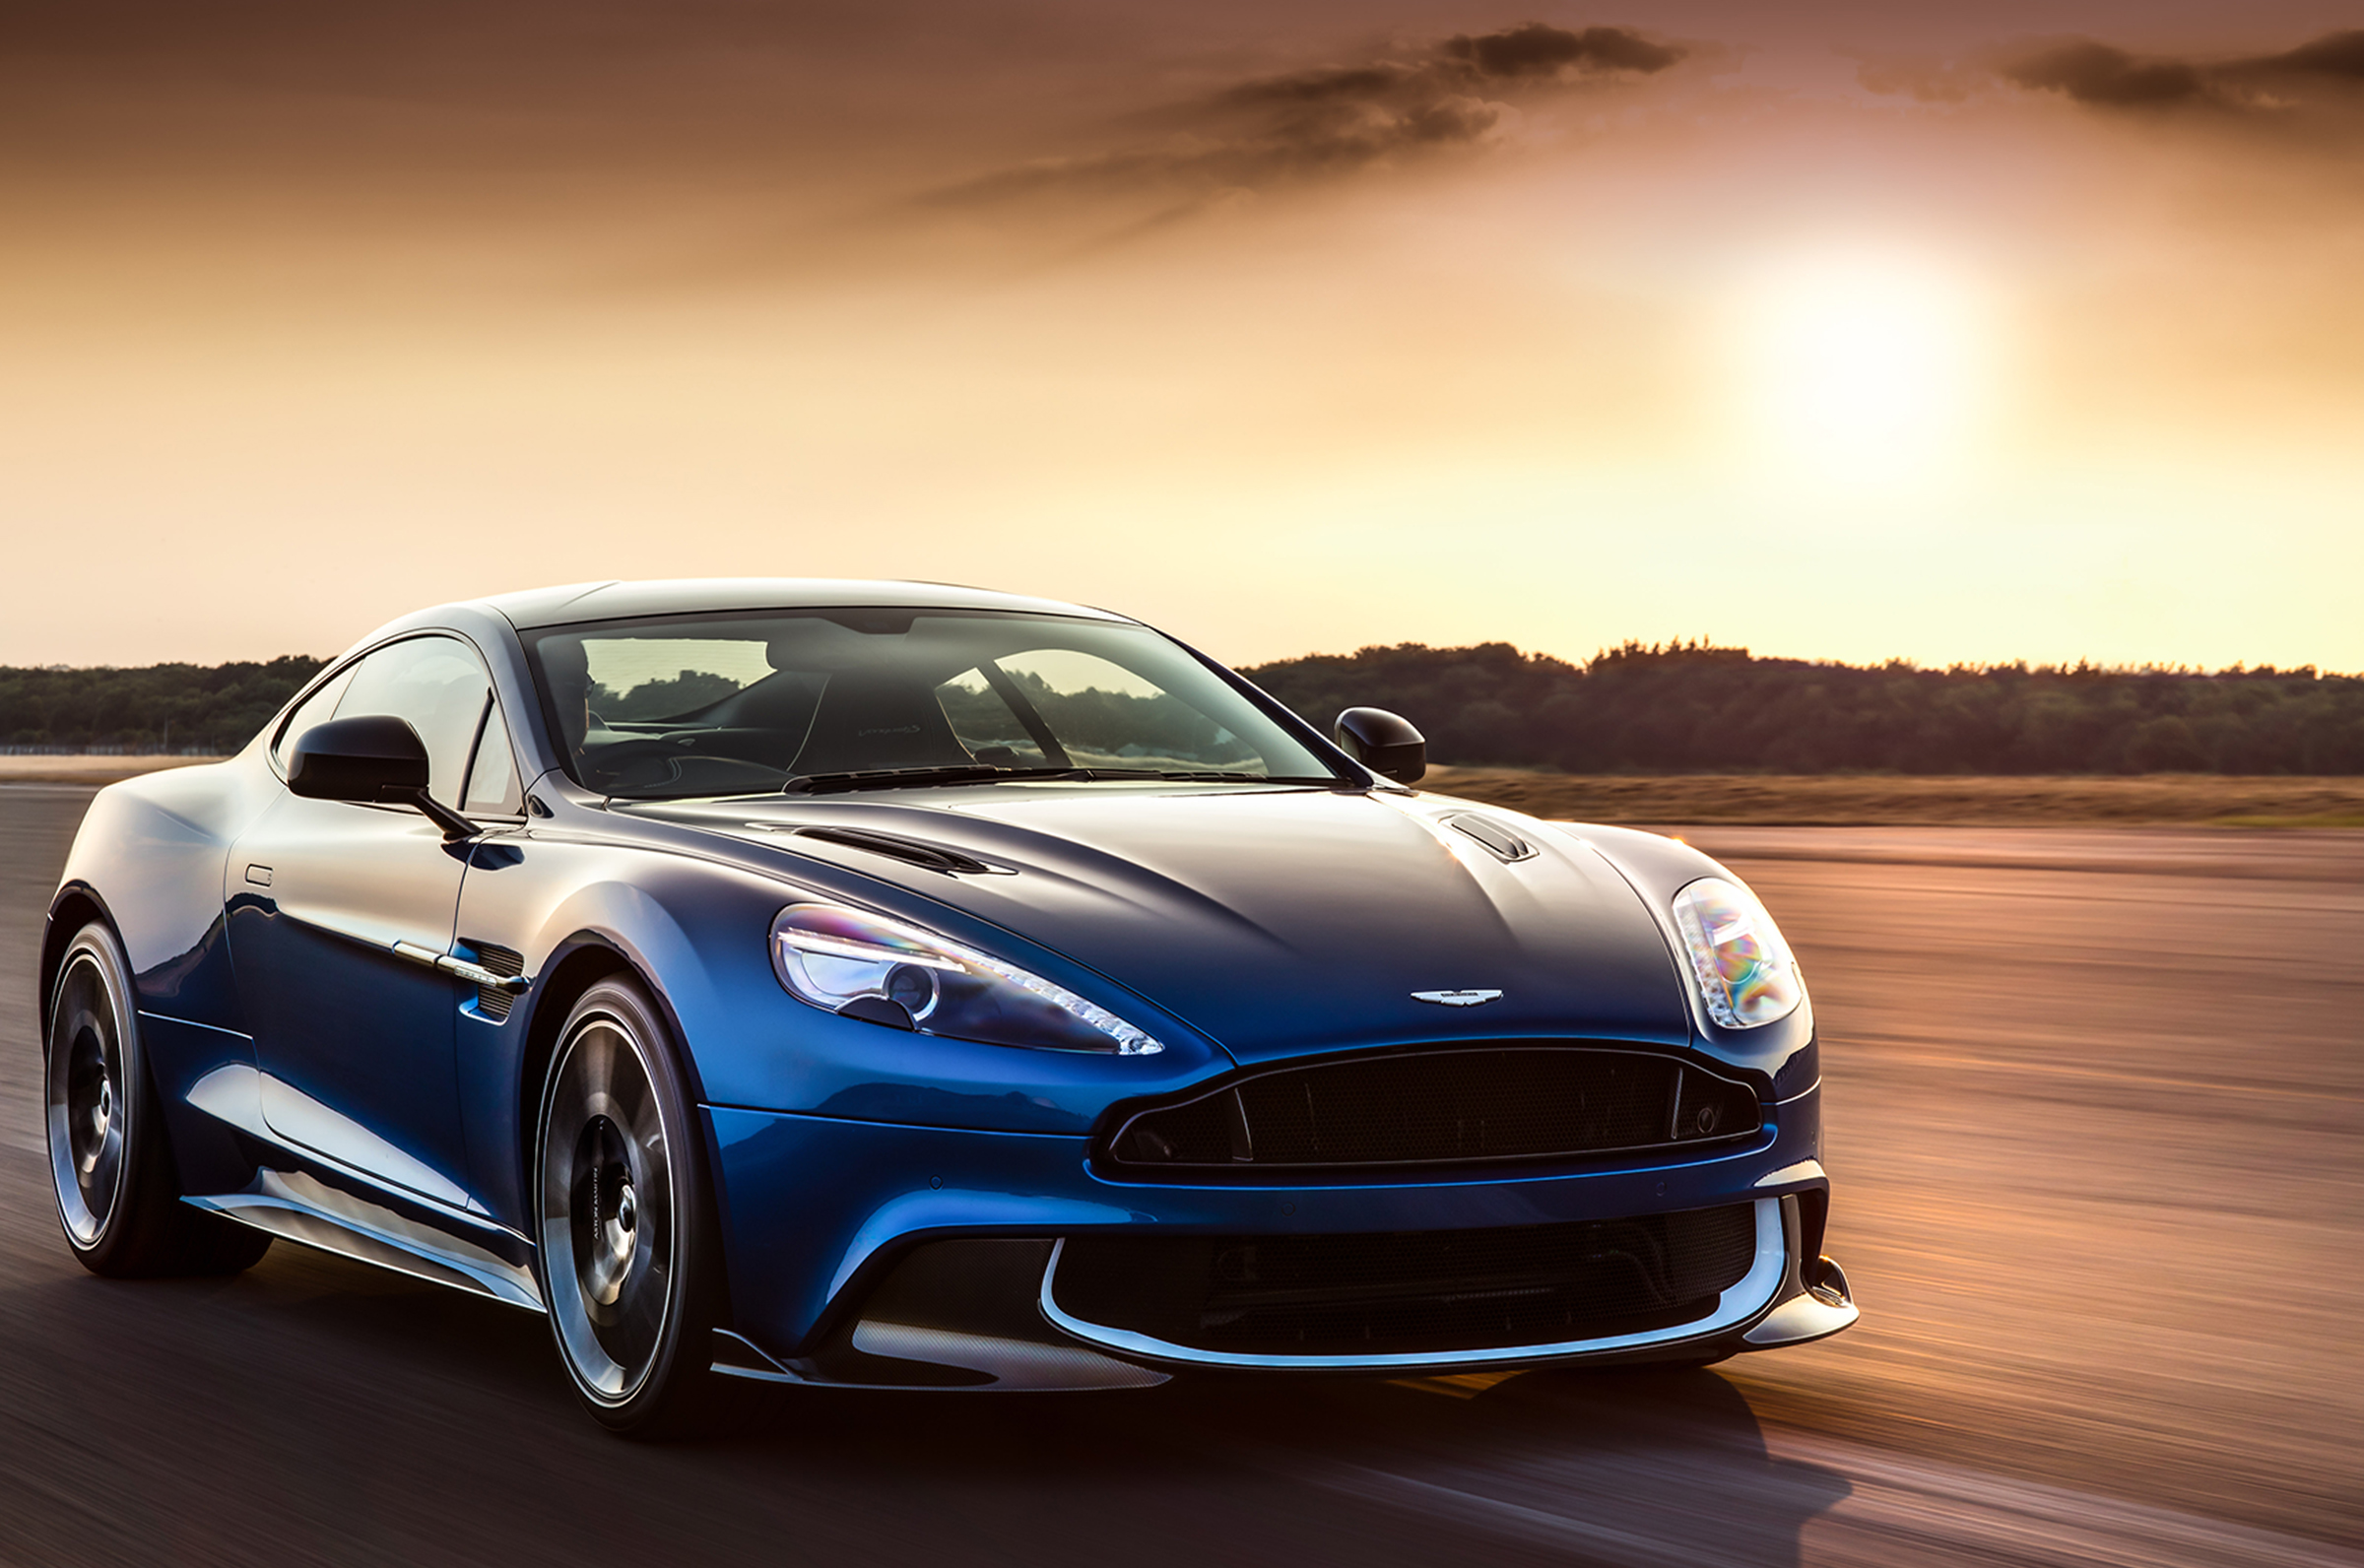 Top 10 Best luxury Sports Cars To Look For In 2018